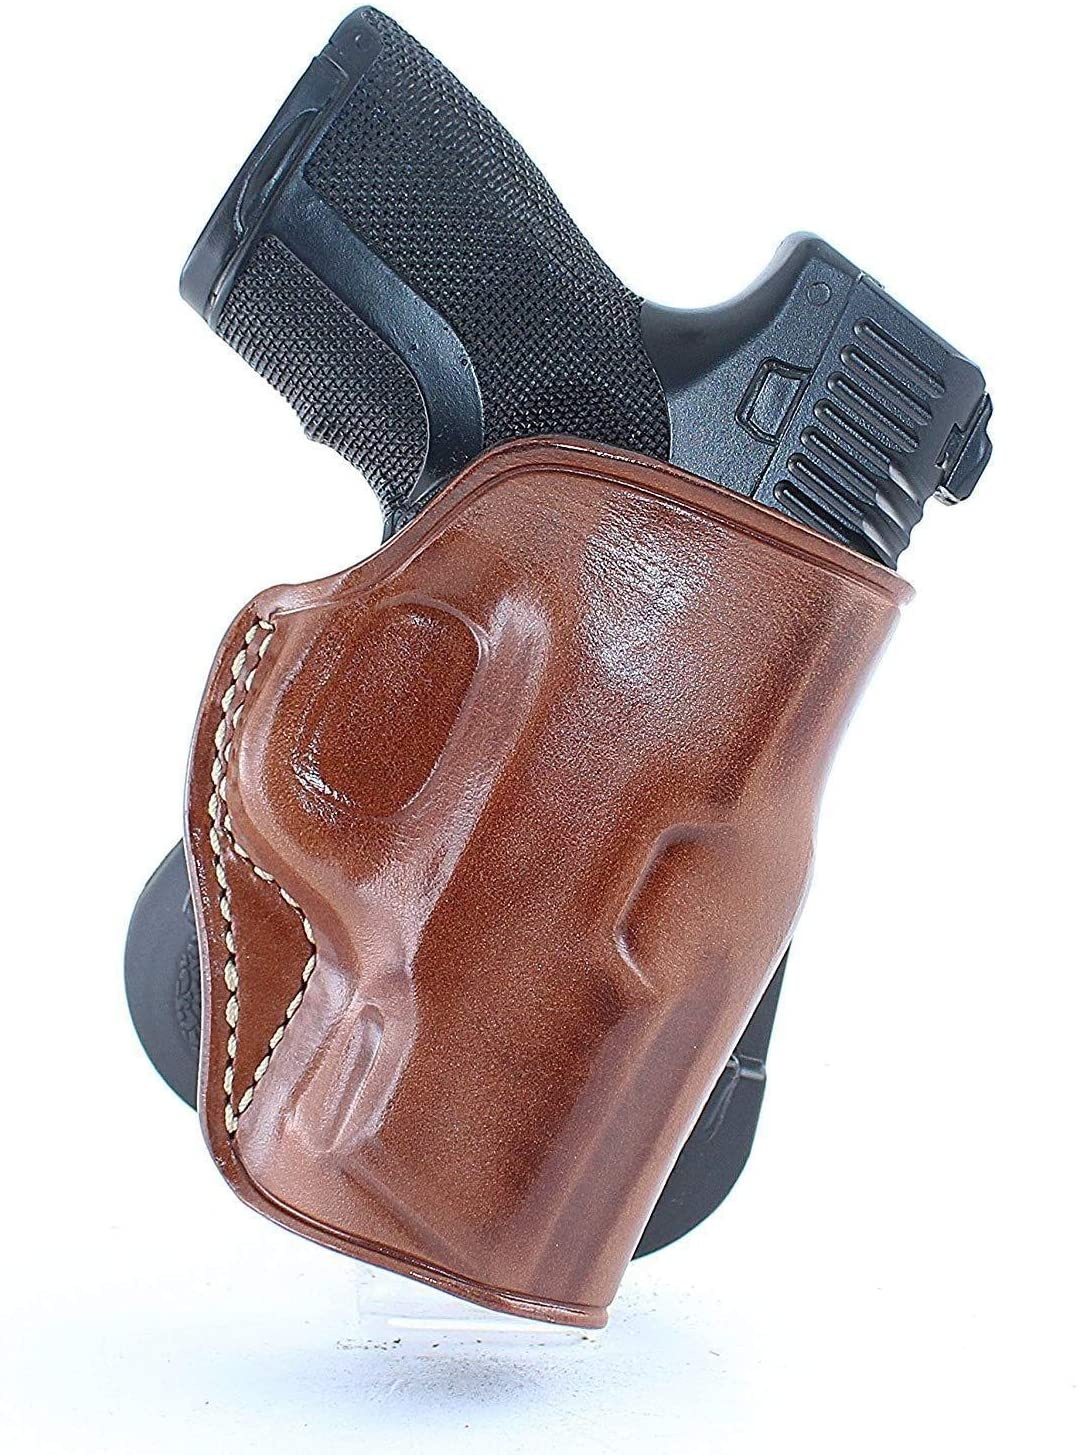 Premium Leather OWB Paddle Holster Open Top Fits S&W Shield .45 w/Thumb Safety 3.3''BBL, Right Hand Draw, Brown Color #1334#